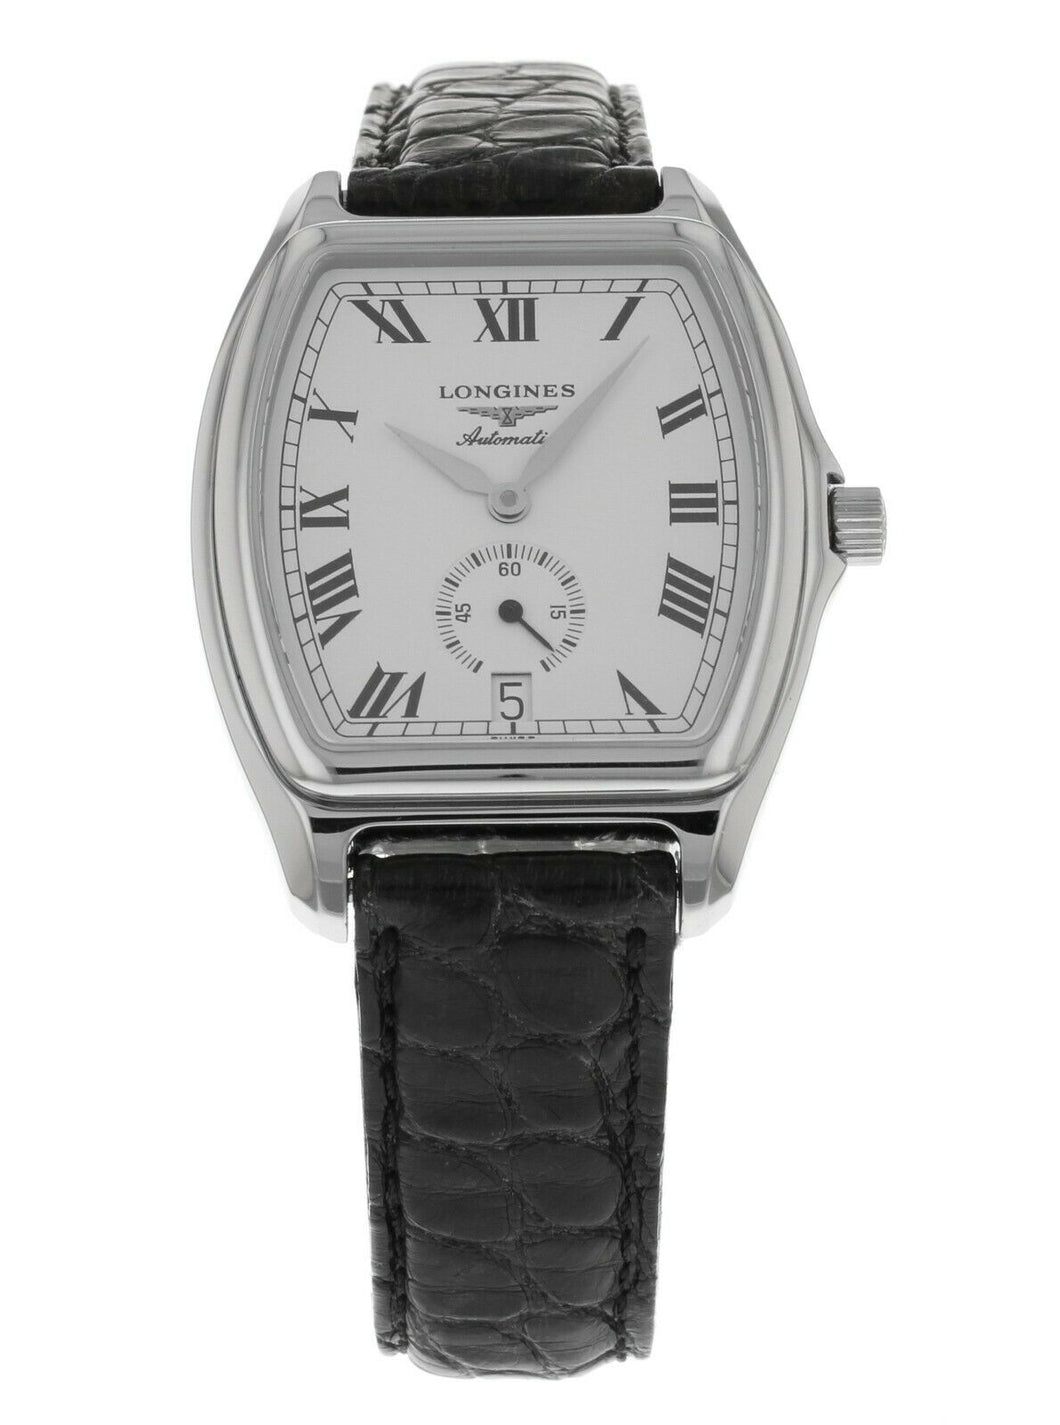 Longines Grandes Classico 33mm Automatic Dress Watch L46824112